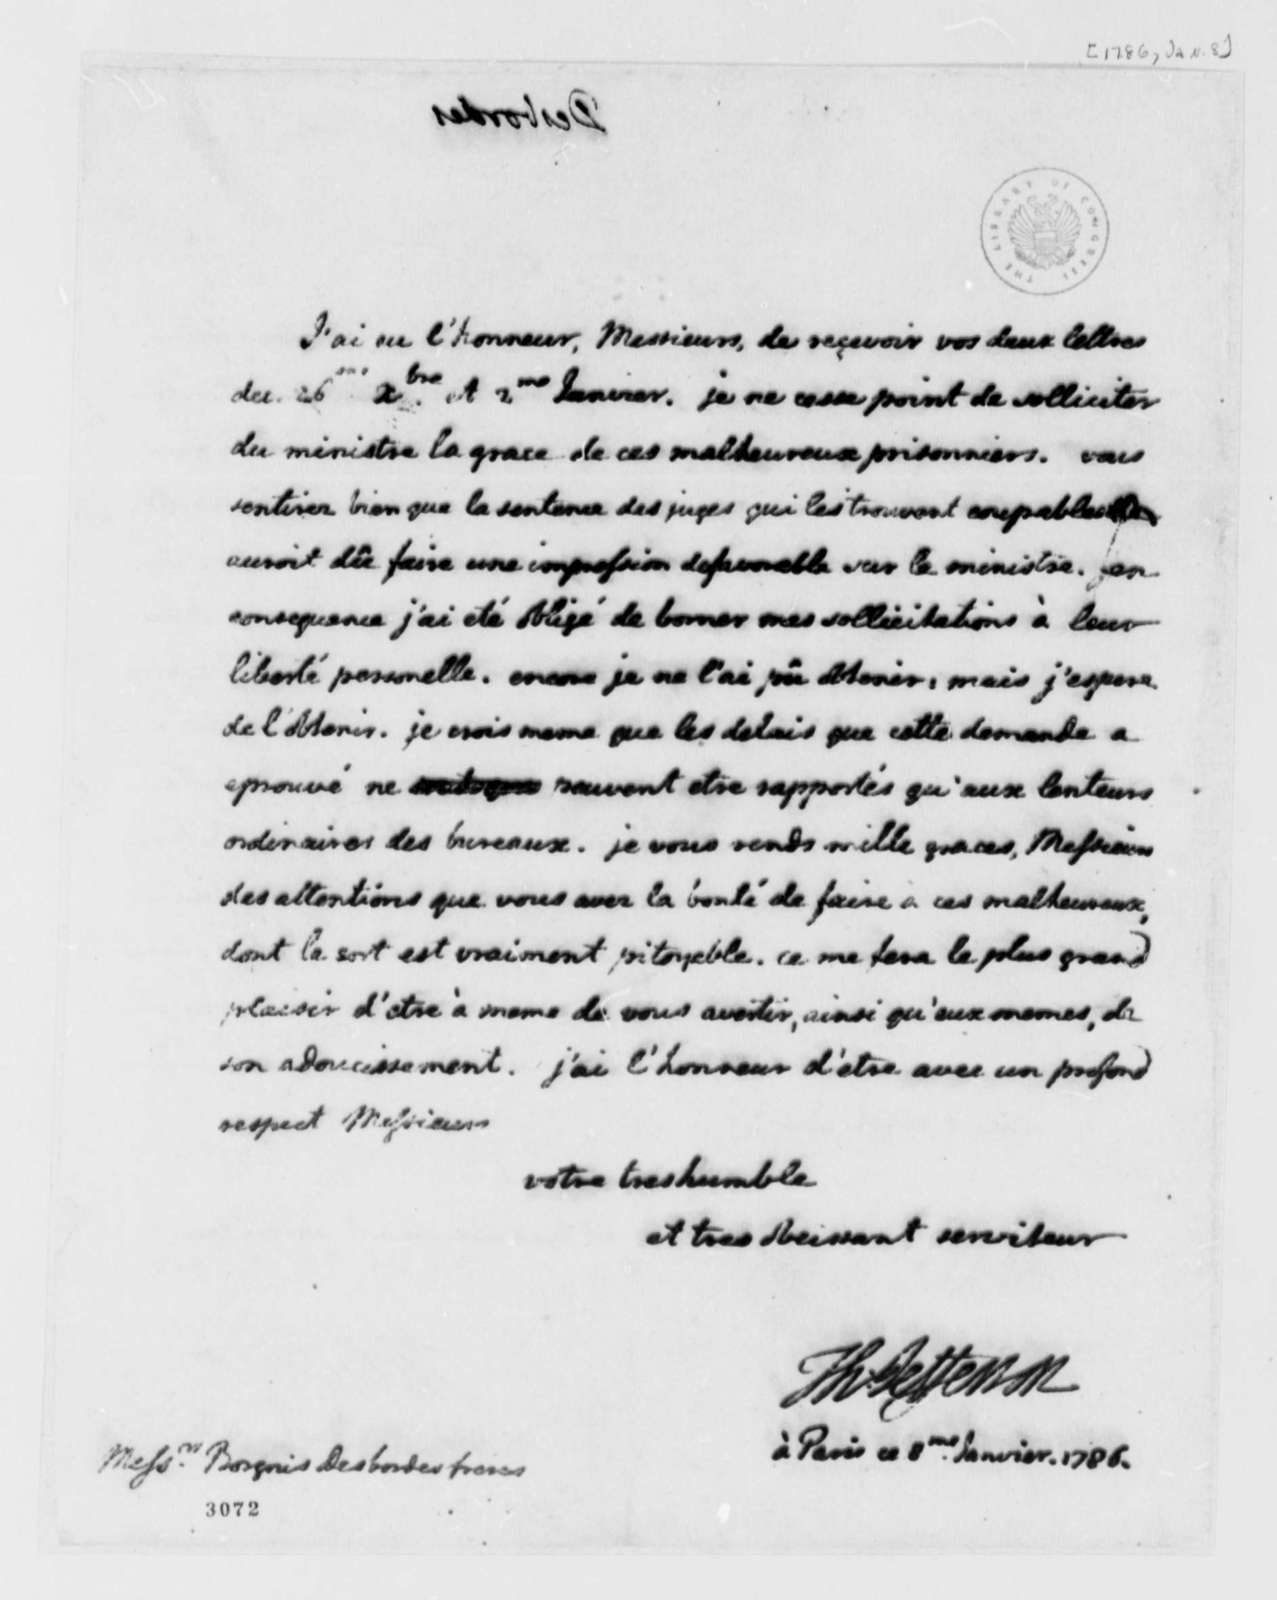 Thomas Jefferson to Borgnis Desbordes, Freres, January 8, 1786, Lister Asquith's Maritime Law Case; William & Catherine (ship); in French